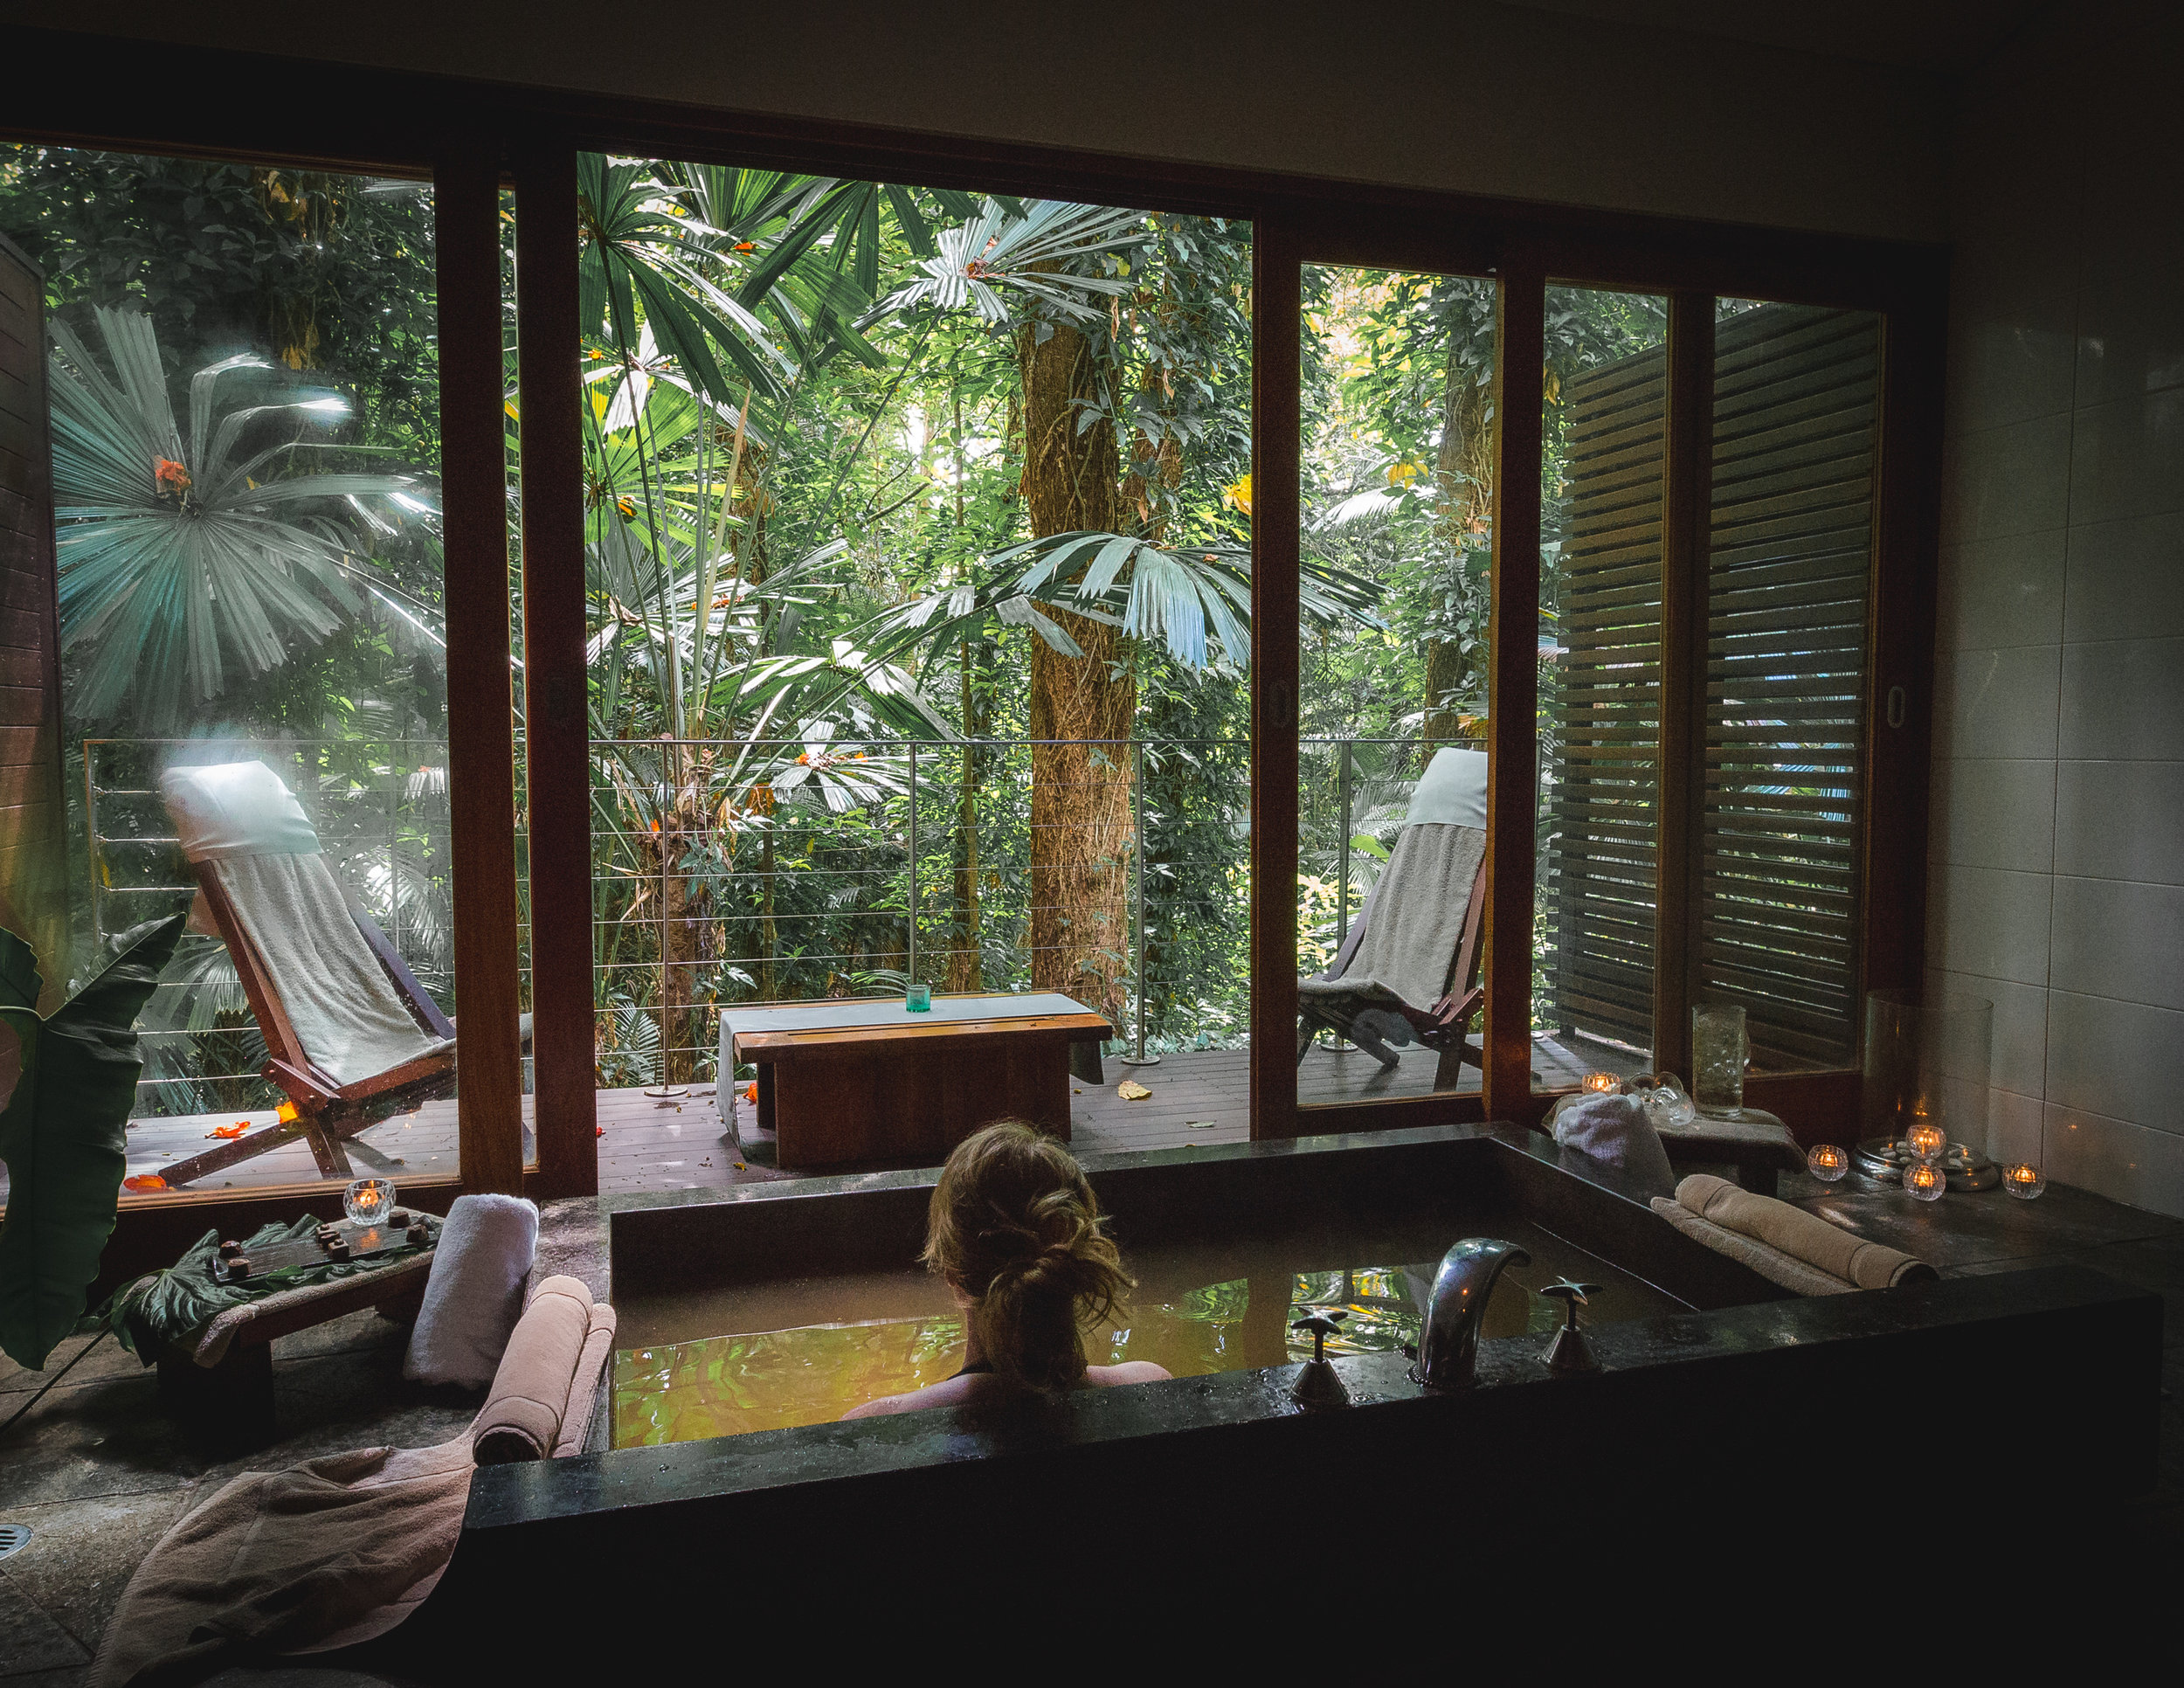 The spa at Silky Oaks Lodge, Mossman